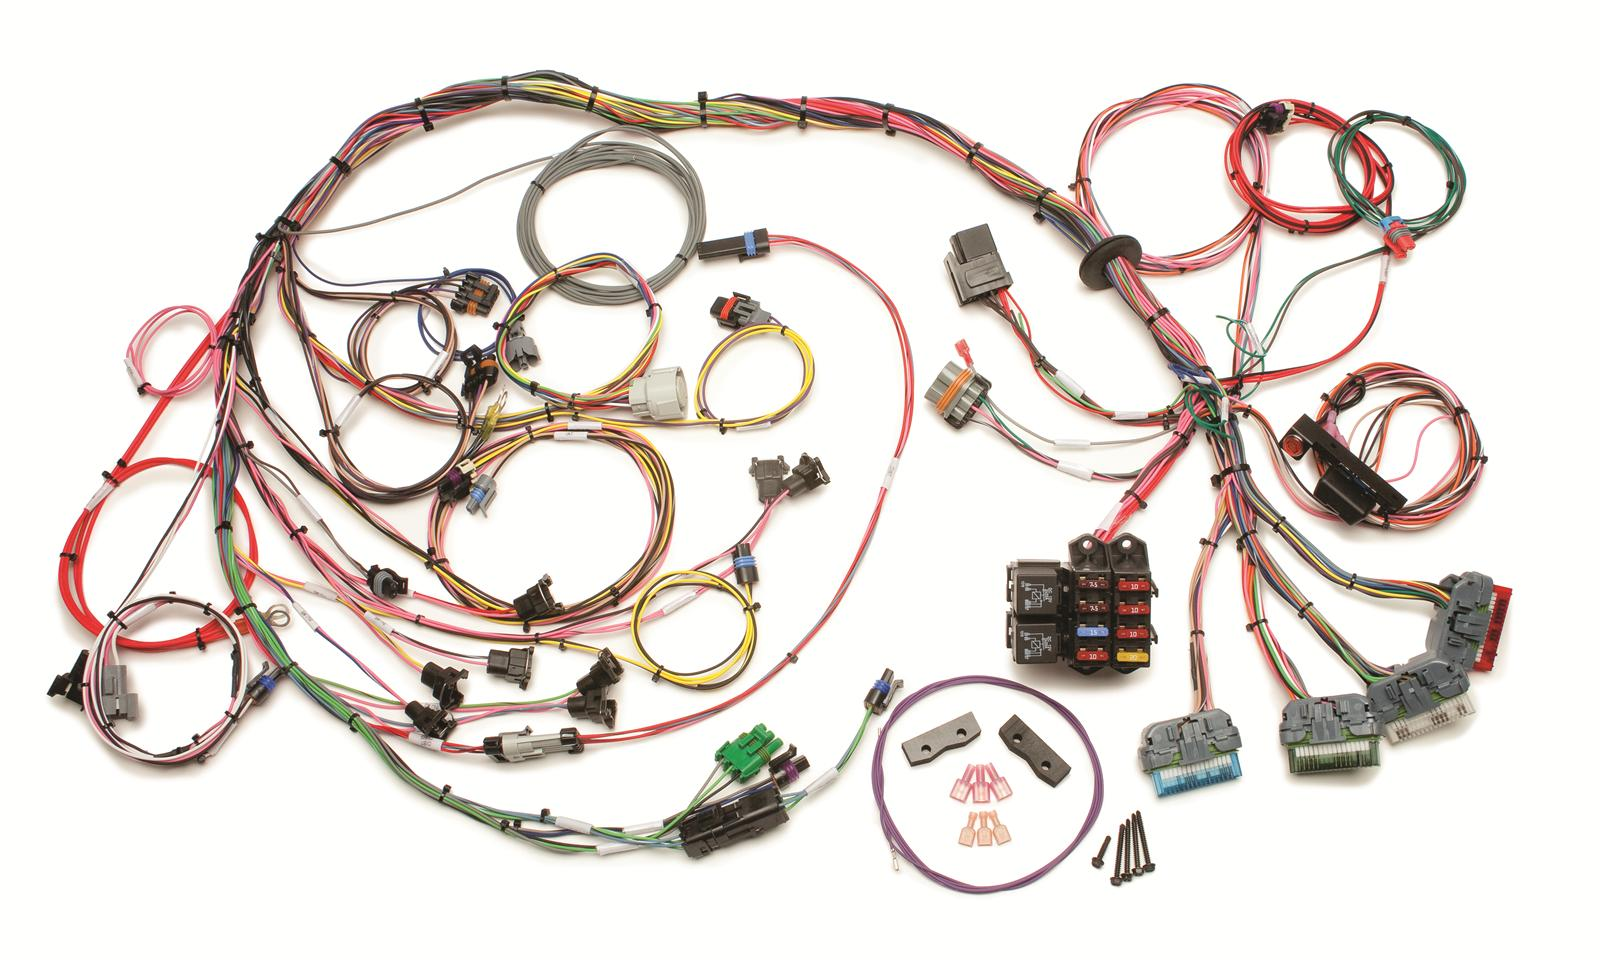 prf 60502_xl painless performance fuel injection harnesses 60502 free painless wiring harness 1958 chevy truck at panicattacktreatment.co